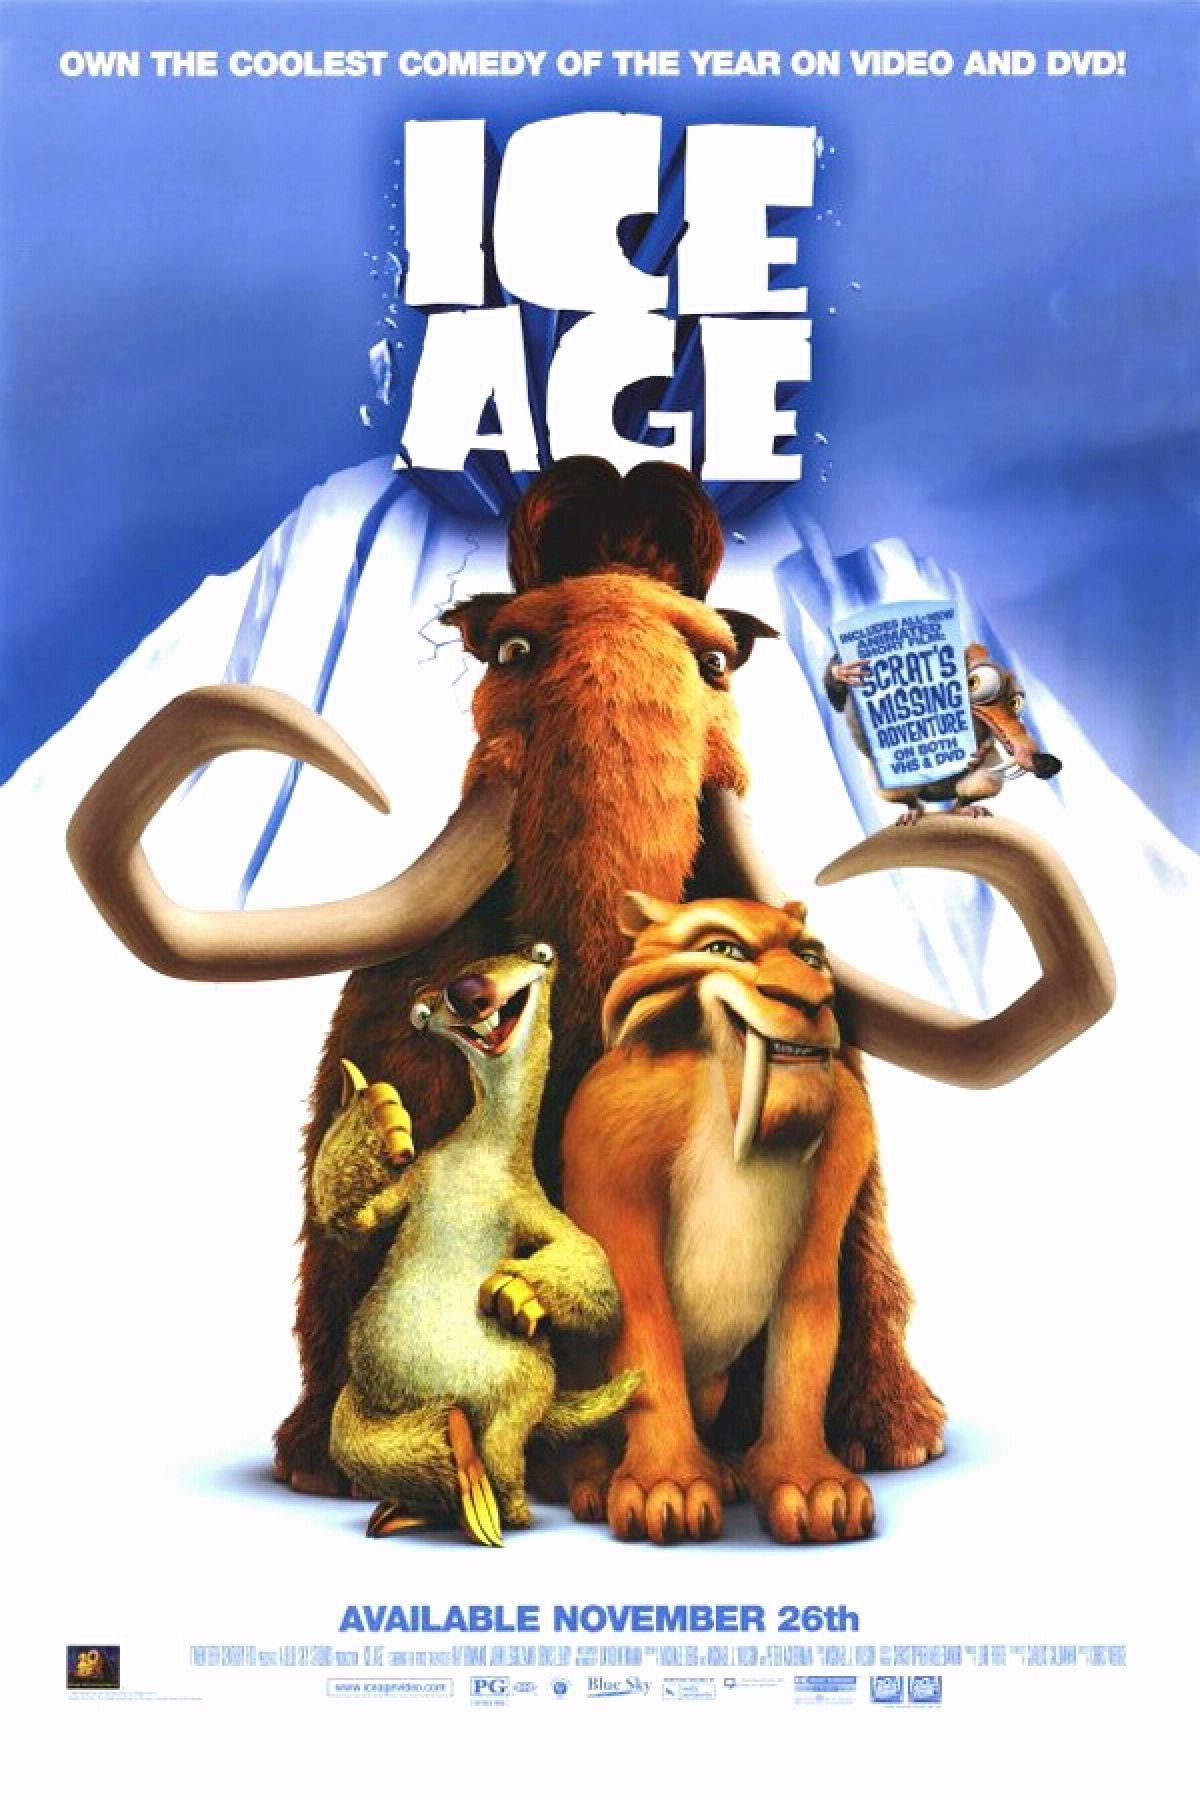 'Ice Age' movie poster